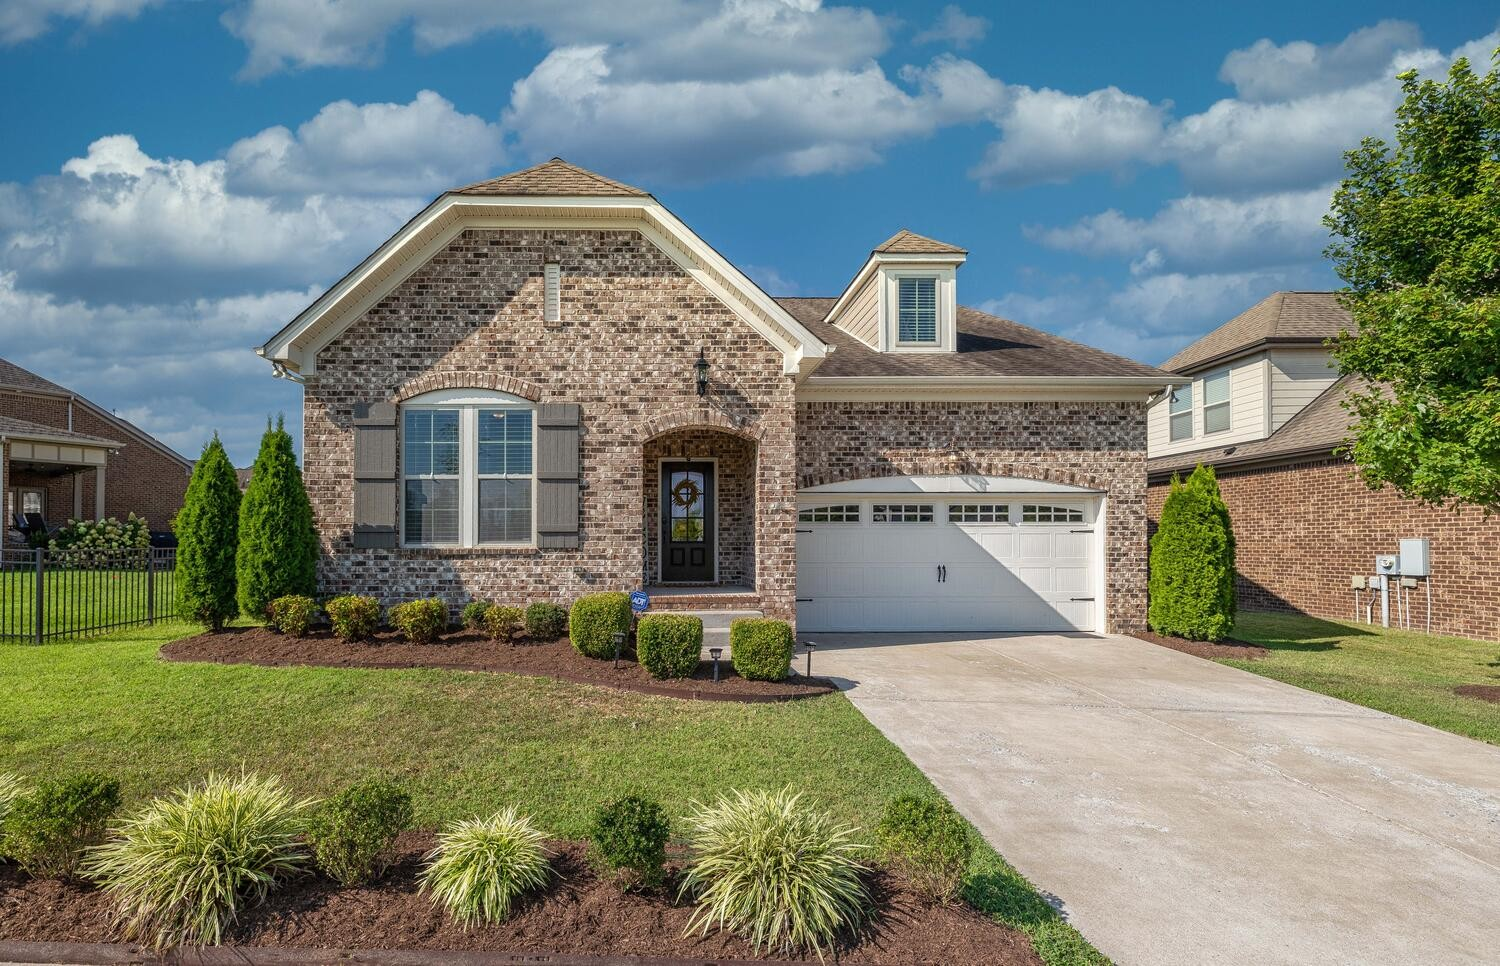 This amazing 4 Bed 3 Bath home in the sought after Canterbury Community is a must see! Perfectly located right across the street from the community Pool and Playground! Spacious open floor plan features Wide Plank floors in living area & enlarged Master BR - Upgraded Kitchen Cabinets - Granite - High End Lighting throughout - Vaulted Ceilings - New Carpet - Closets by Design in Master closet. 2 car Garage w Professional Epoxy finished Floors. Fenced in Back Yard. All Kitchen Appliances remain.